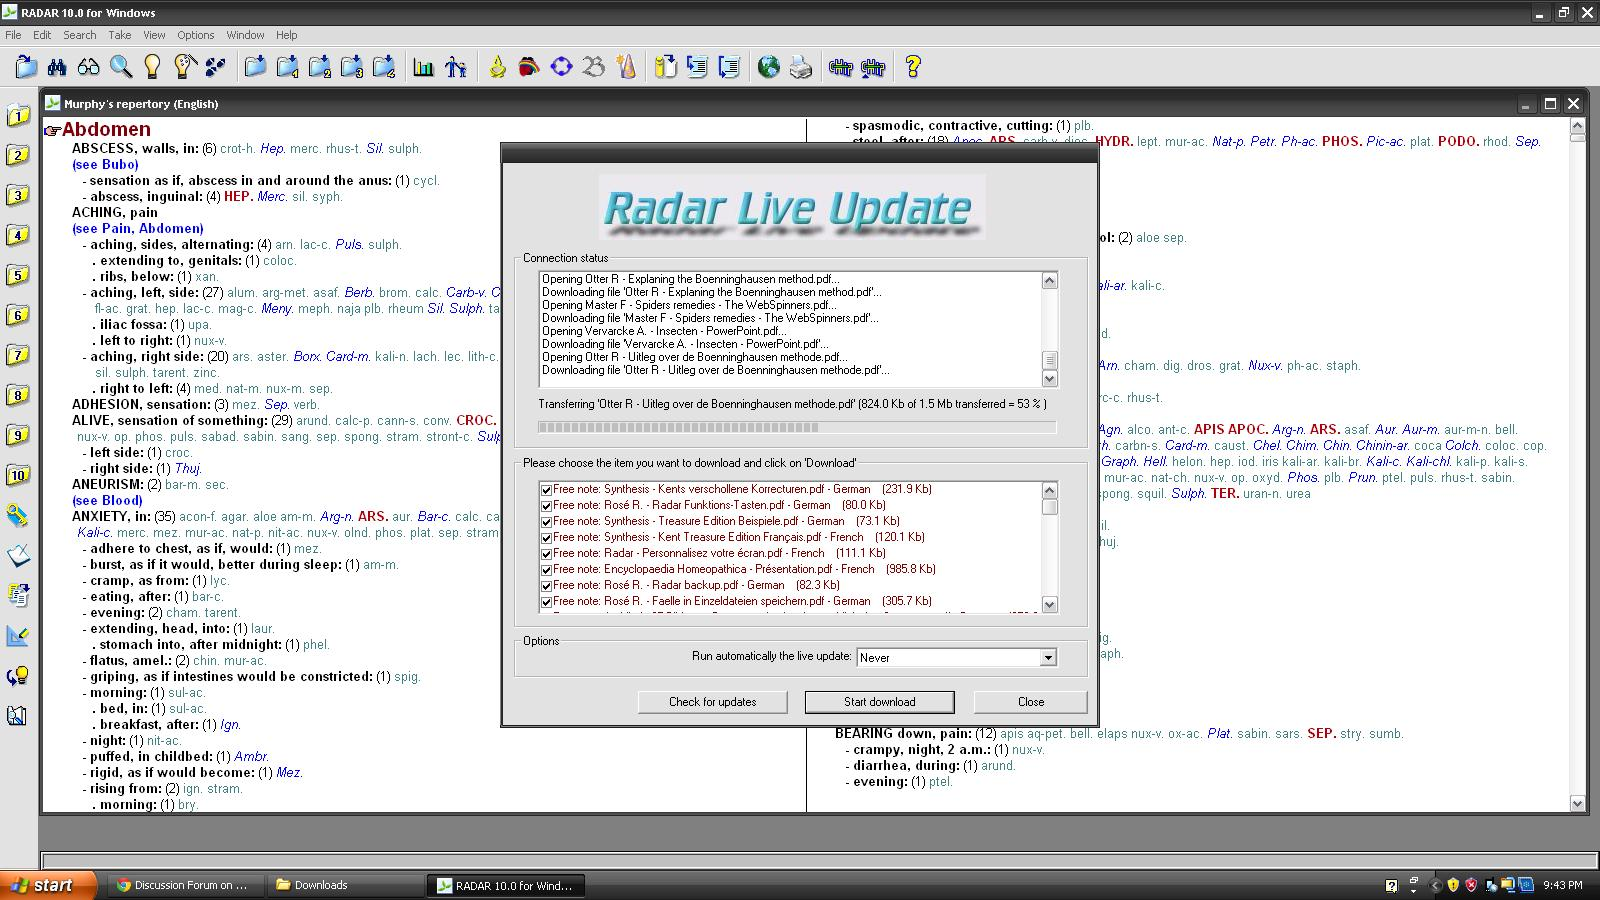 Free Download Radar 10 Homeopathic Software For Windows 7